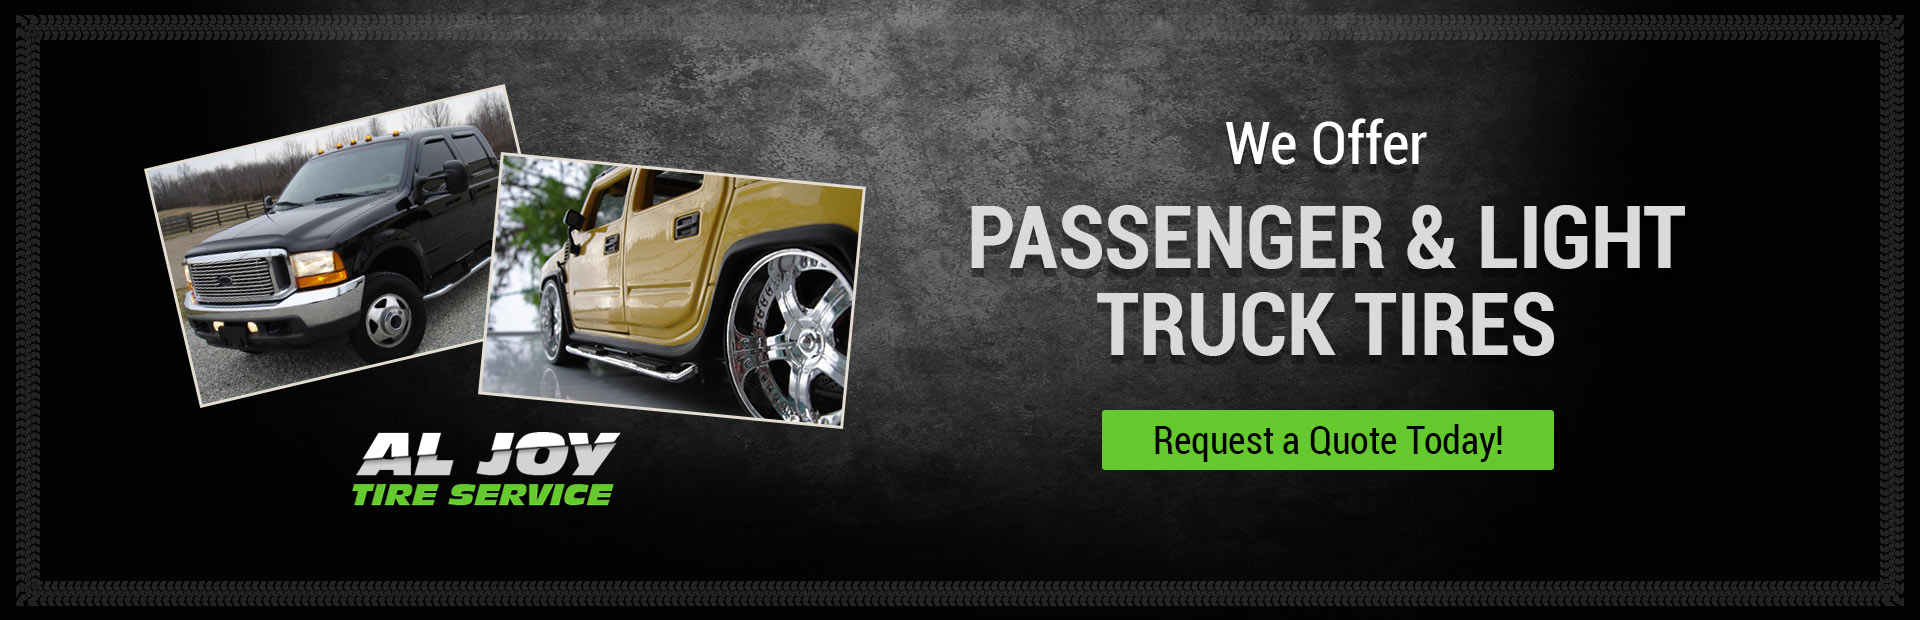 We offer passenger and light truck tires. Request a quote today!